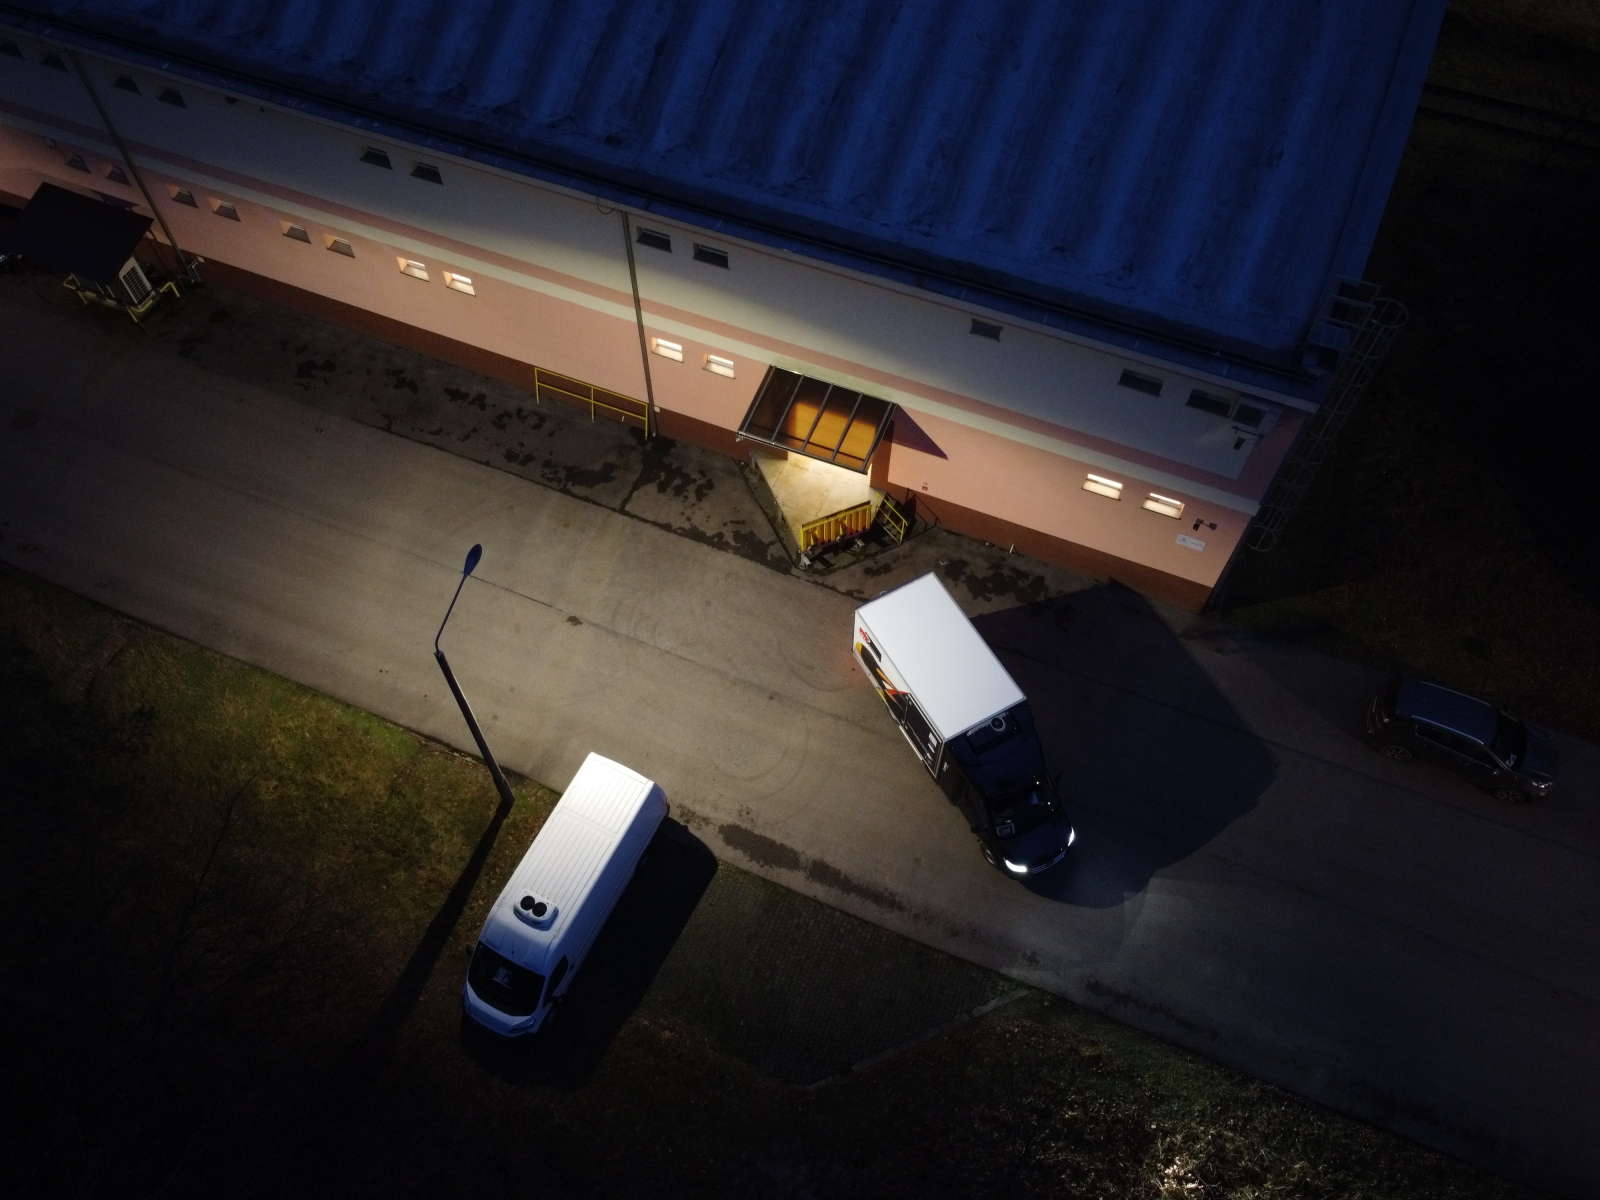 Vaccines arriving at storage facility in Poland